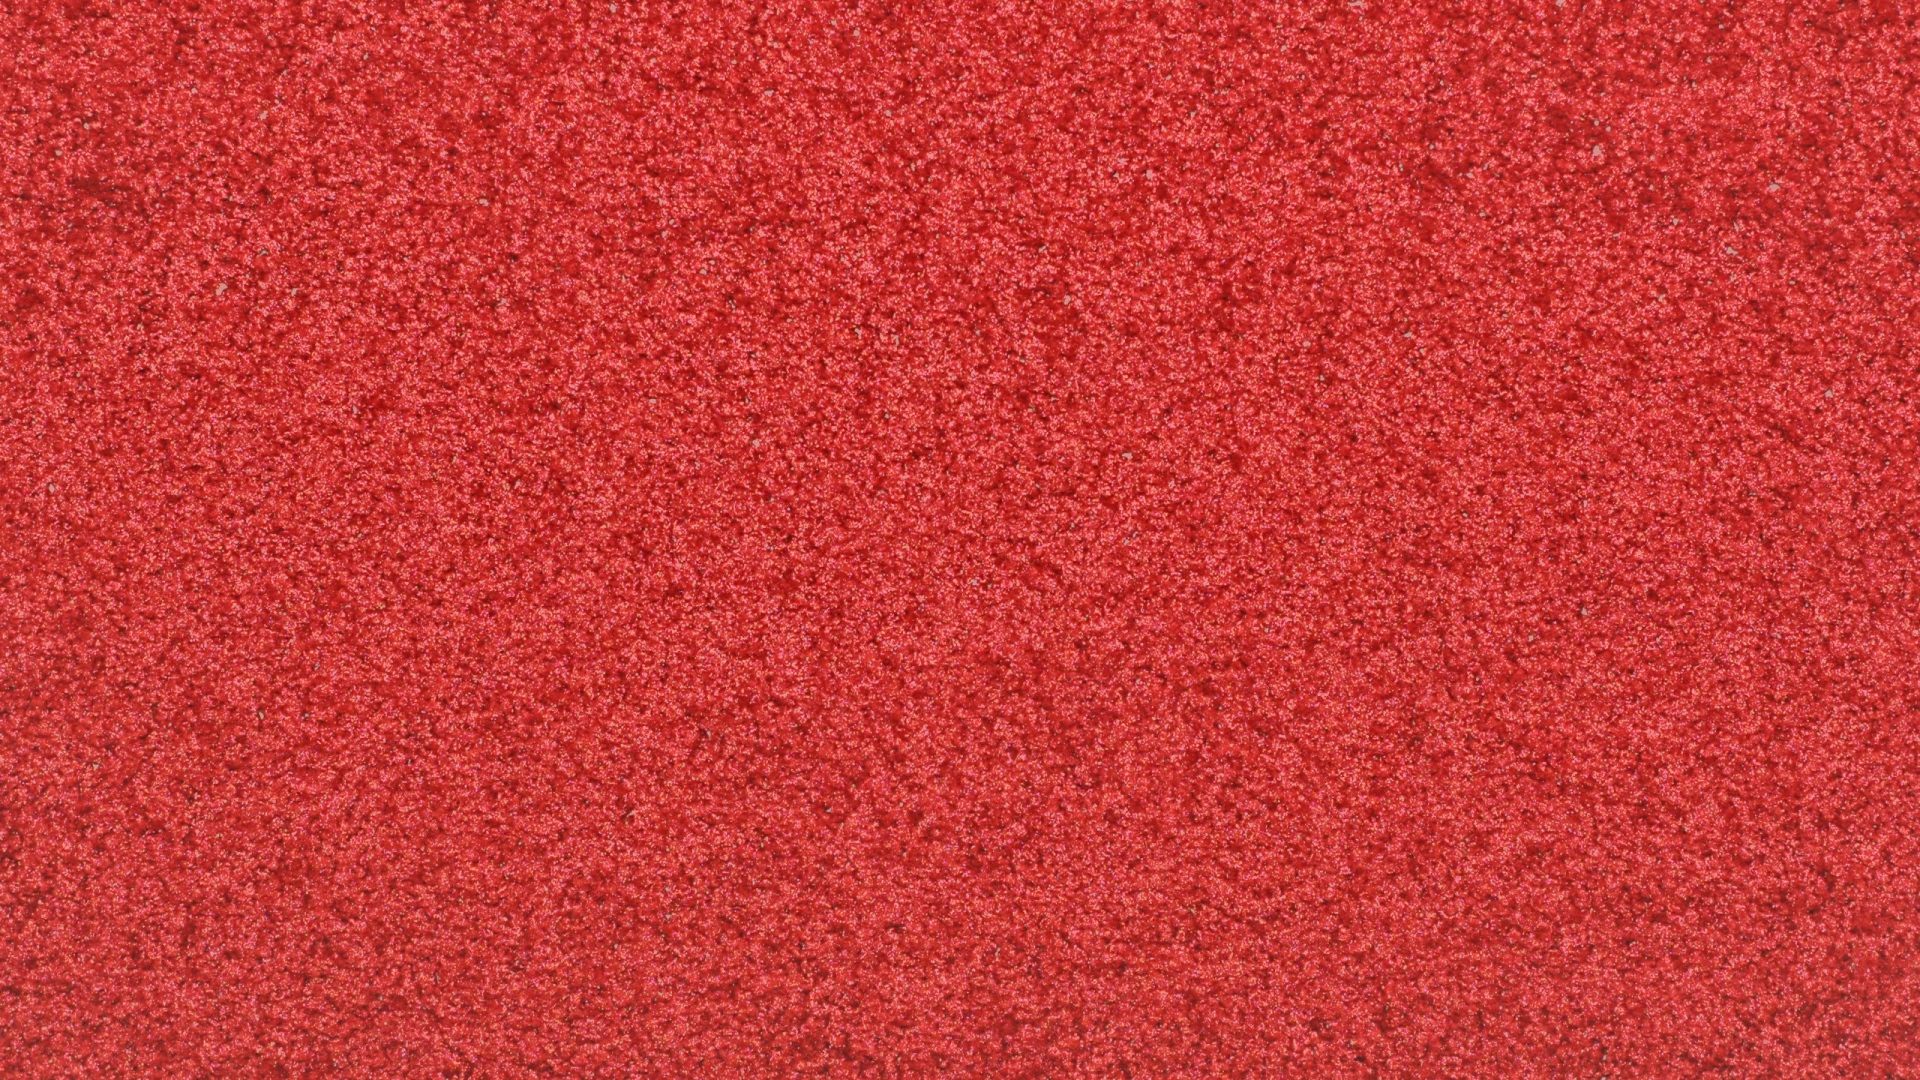 Download Wallpaper 1920x1080 texture, red, carpet, rug ...  Red Carpet Texture Pattern